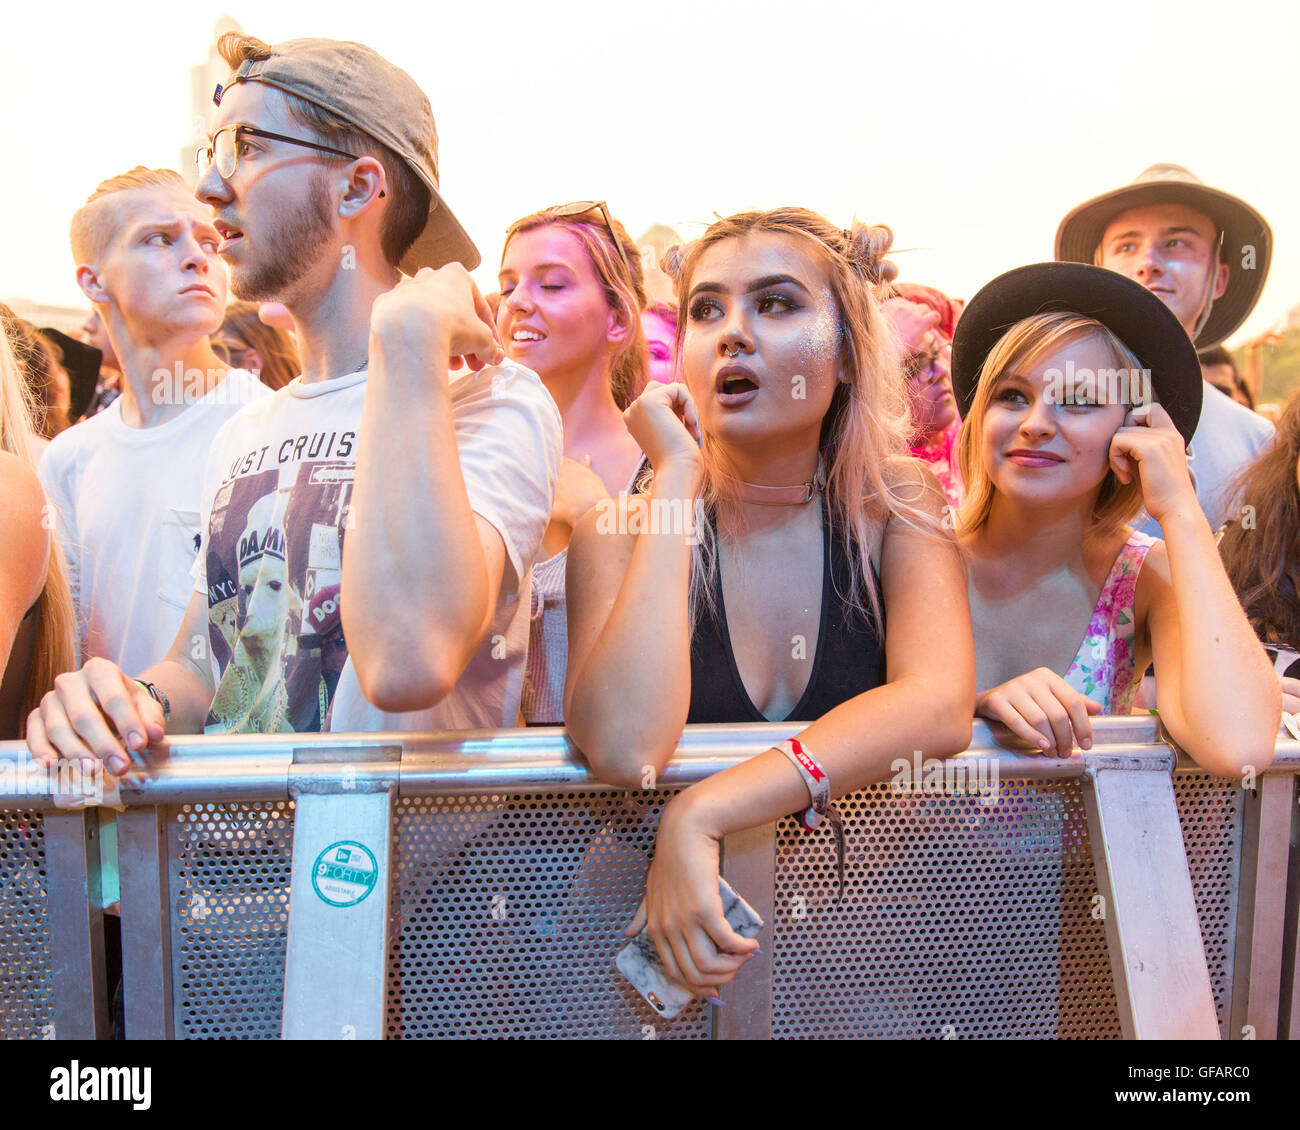 Chicago, Illinois, USA. 29th July, 2016. Music fans enjoy Mo during Lollapalooza Music Festival at Grant Park in - Stock Image